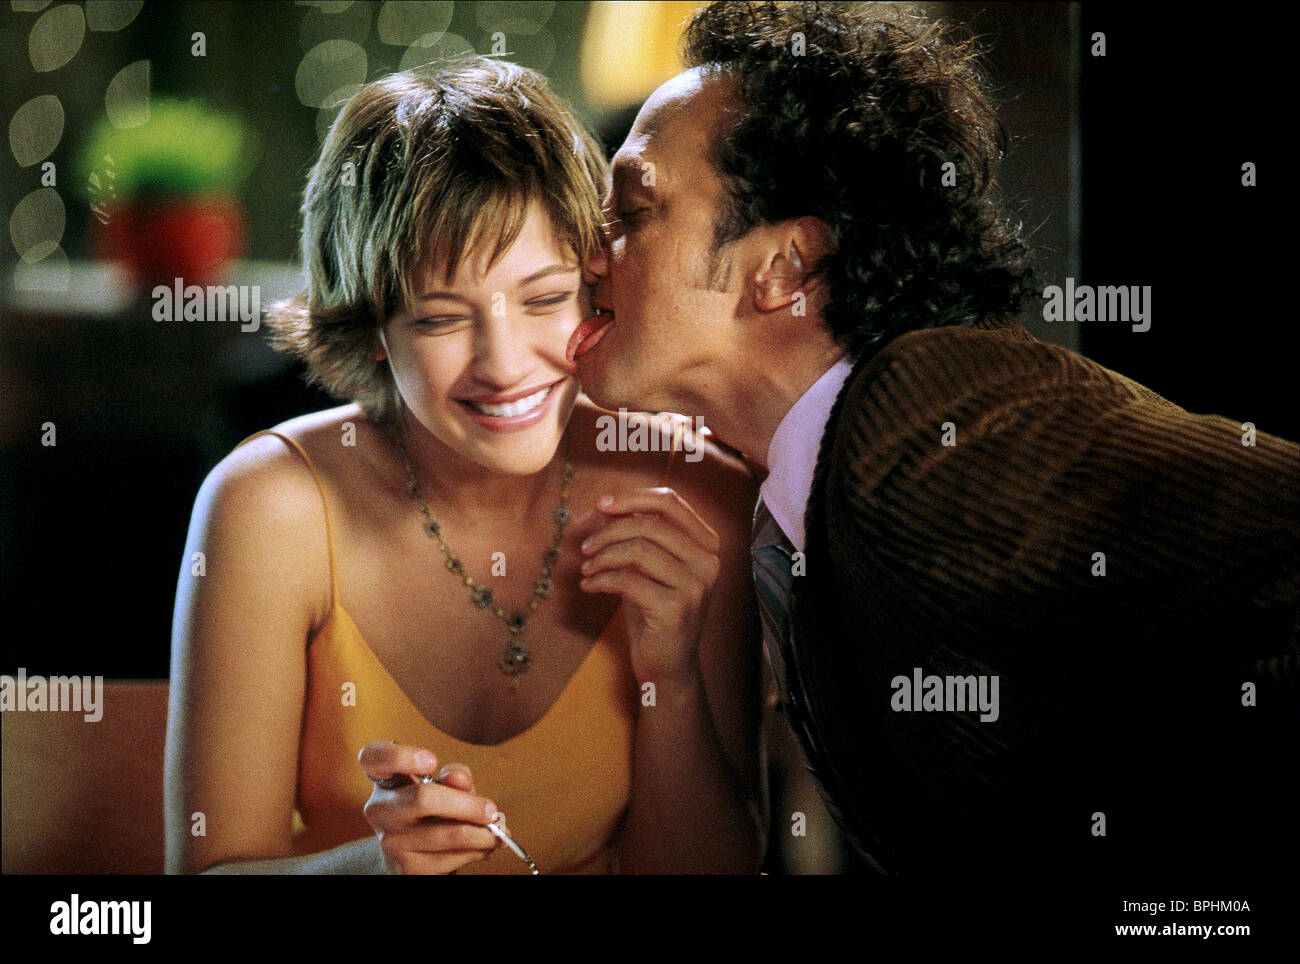 photo Colleen Haskell